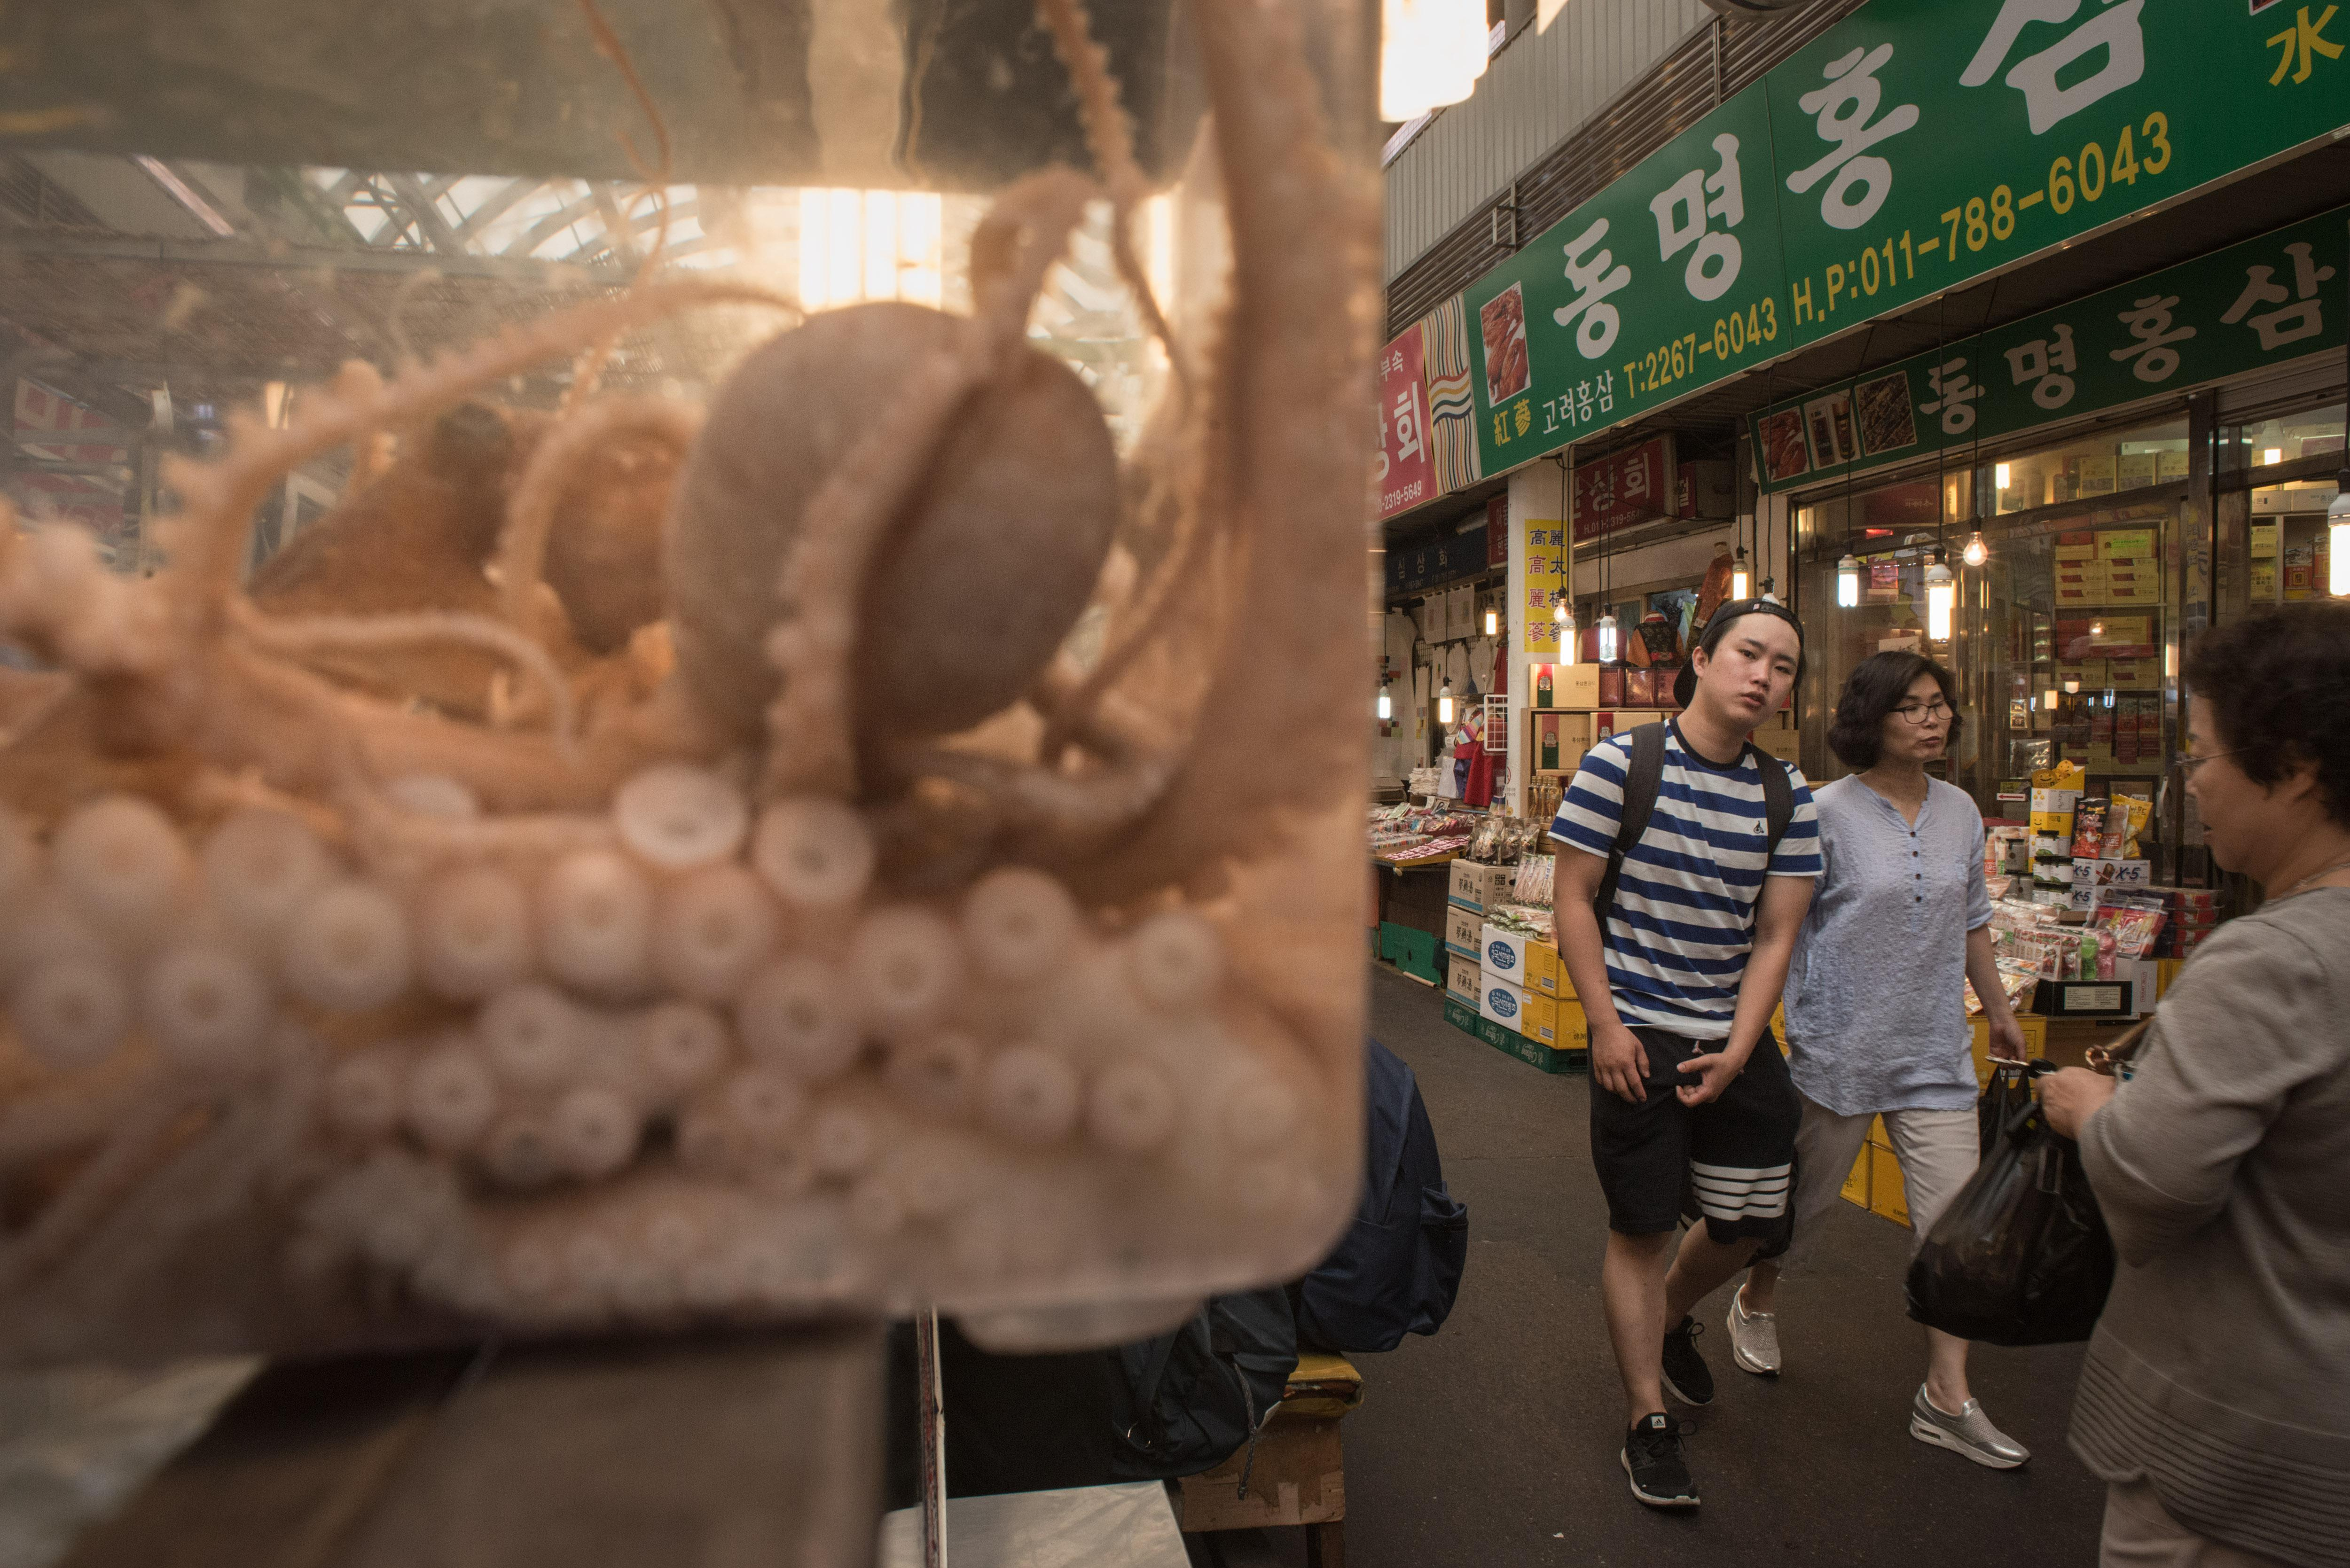 People walk past octopus displayed at a food stall in Gwangjang market in Seoul on June 27, 2017. / AFP PHOTO / Ed Jones        (Photo credit should read ED JONES/AFP/Getty Images)